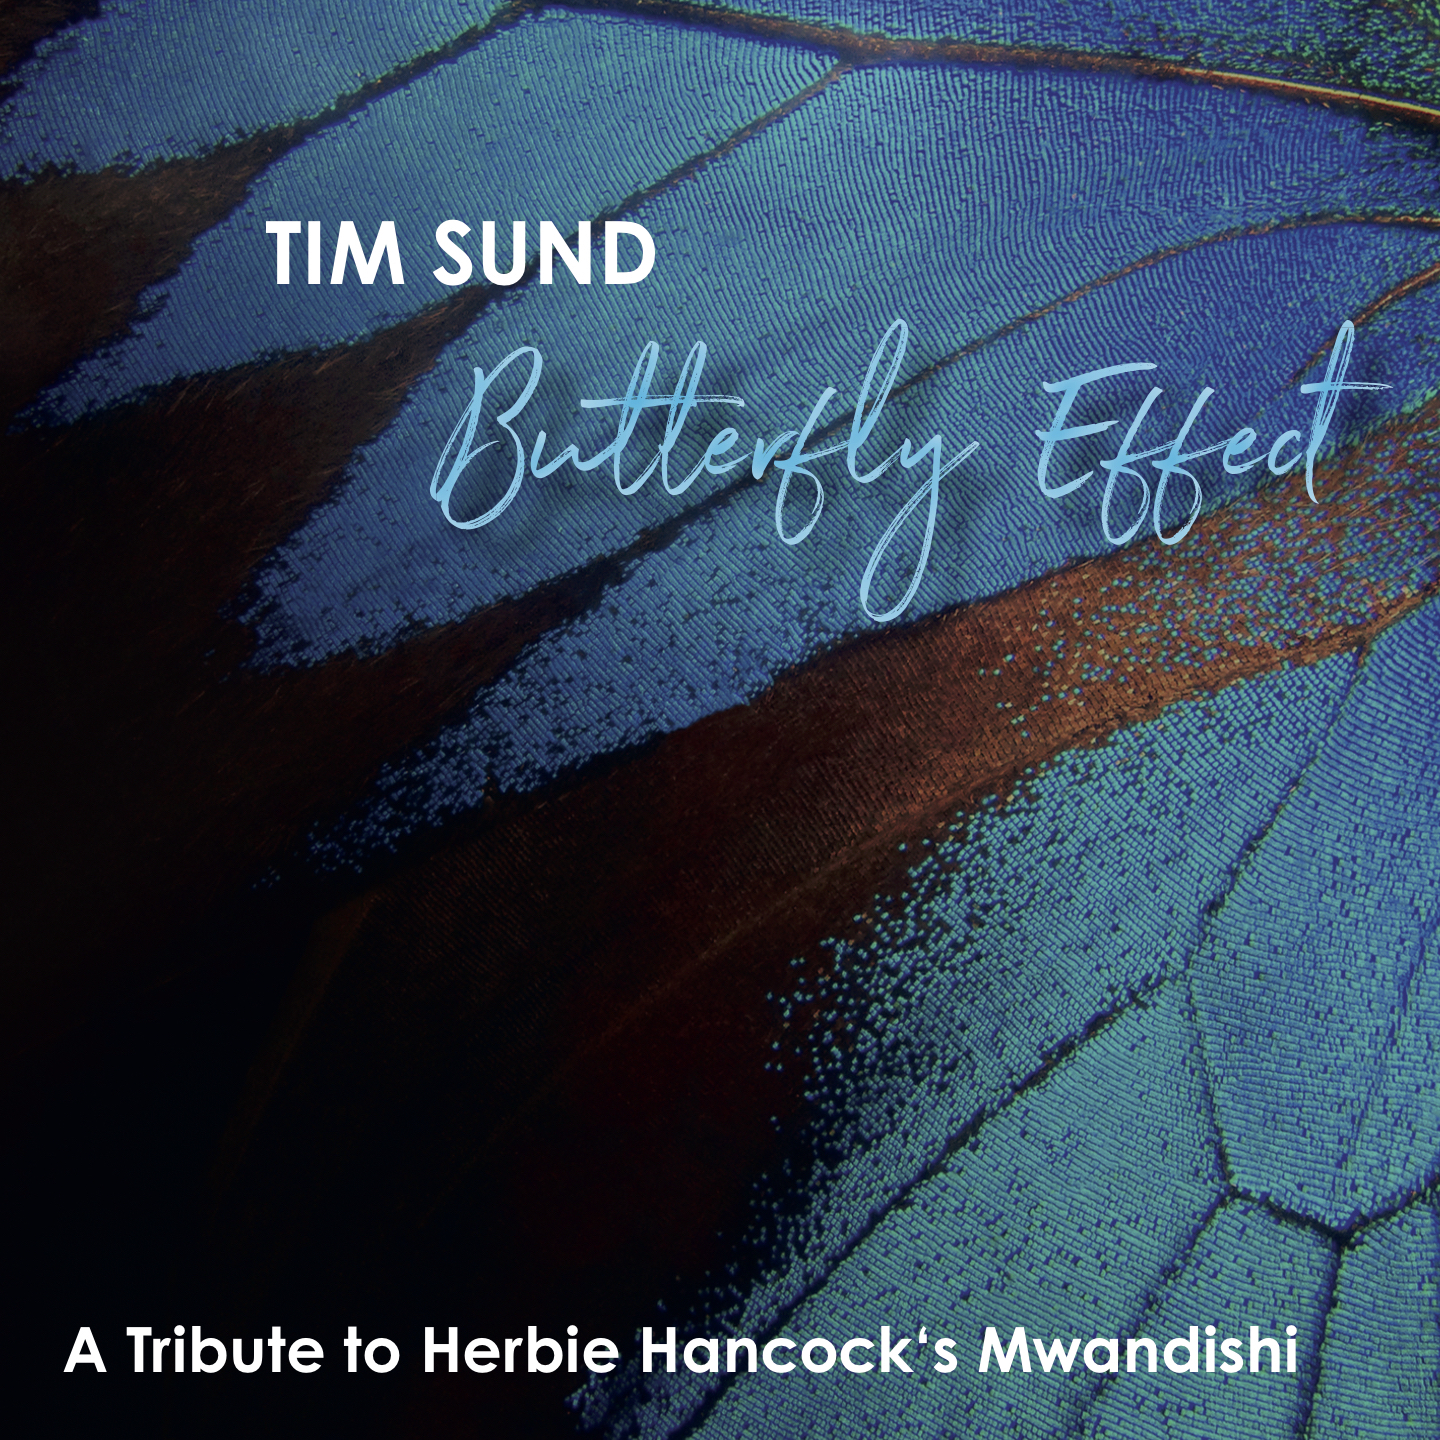 Tim Sund Butterfly Effect Cover © Laika Records 2019